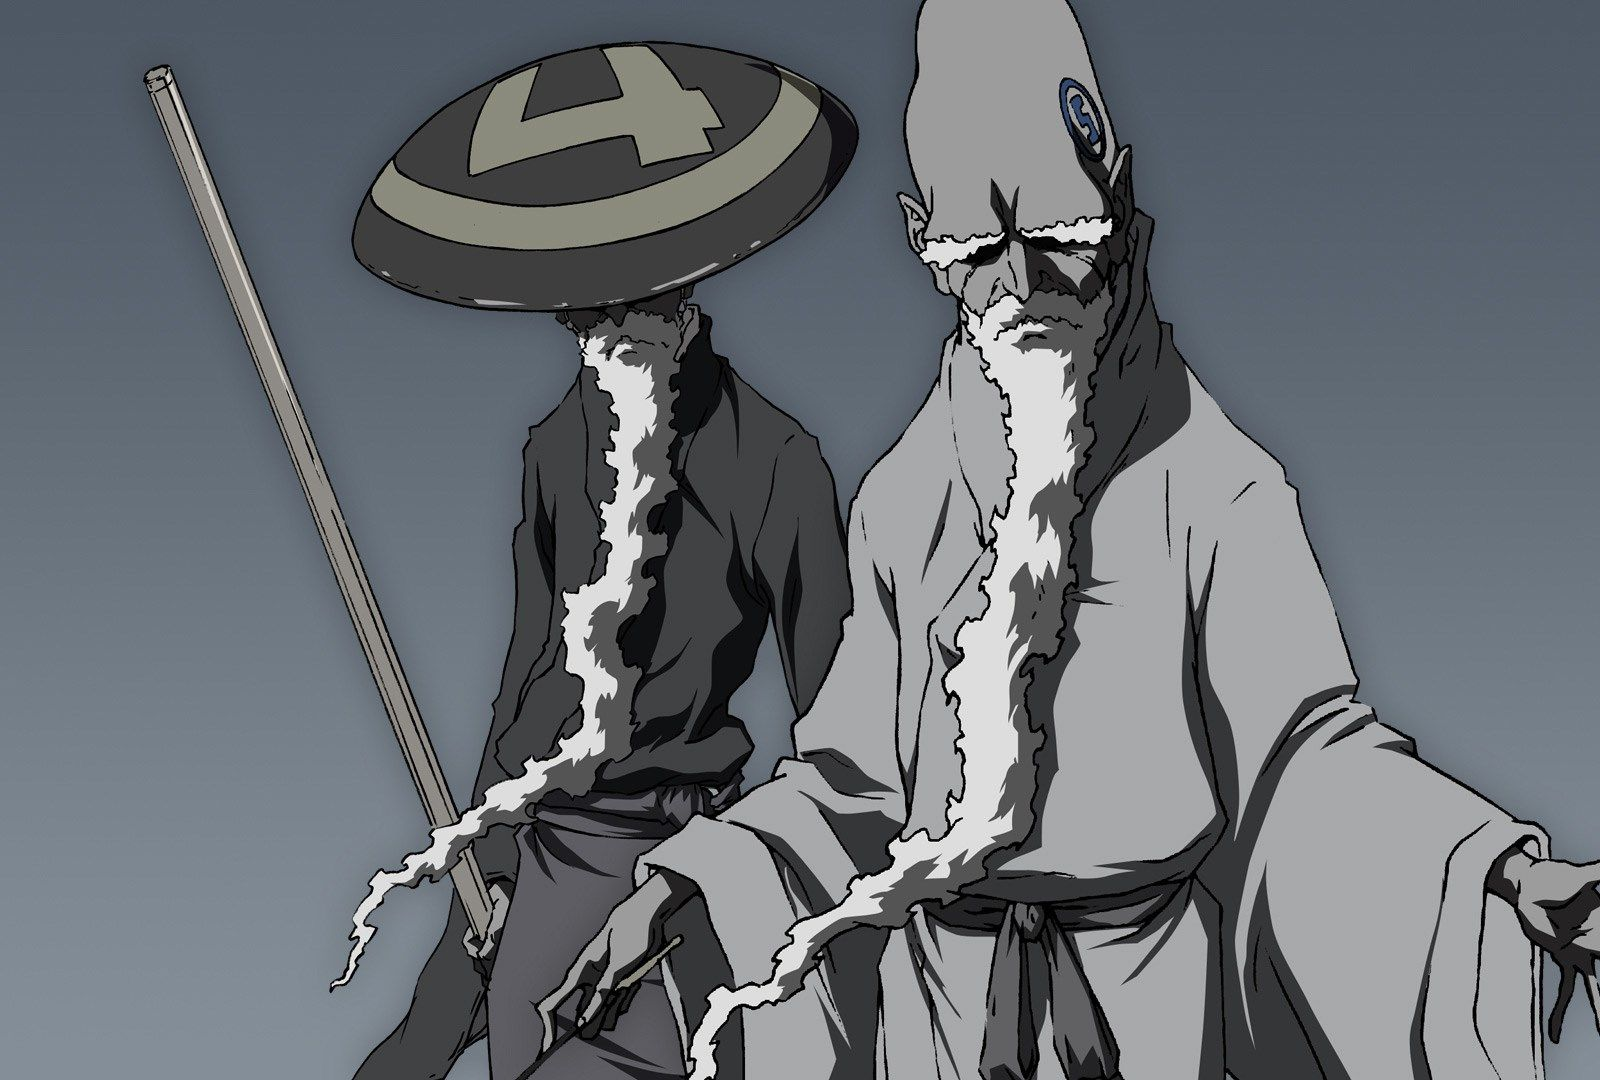 afro samurai picture - Full HD Wallpapers, Photos by Carville Brian (2017-03-17)